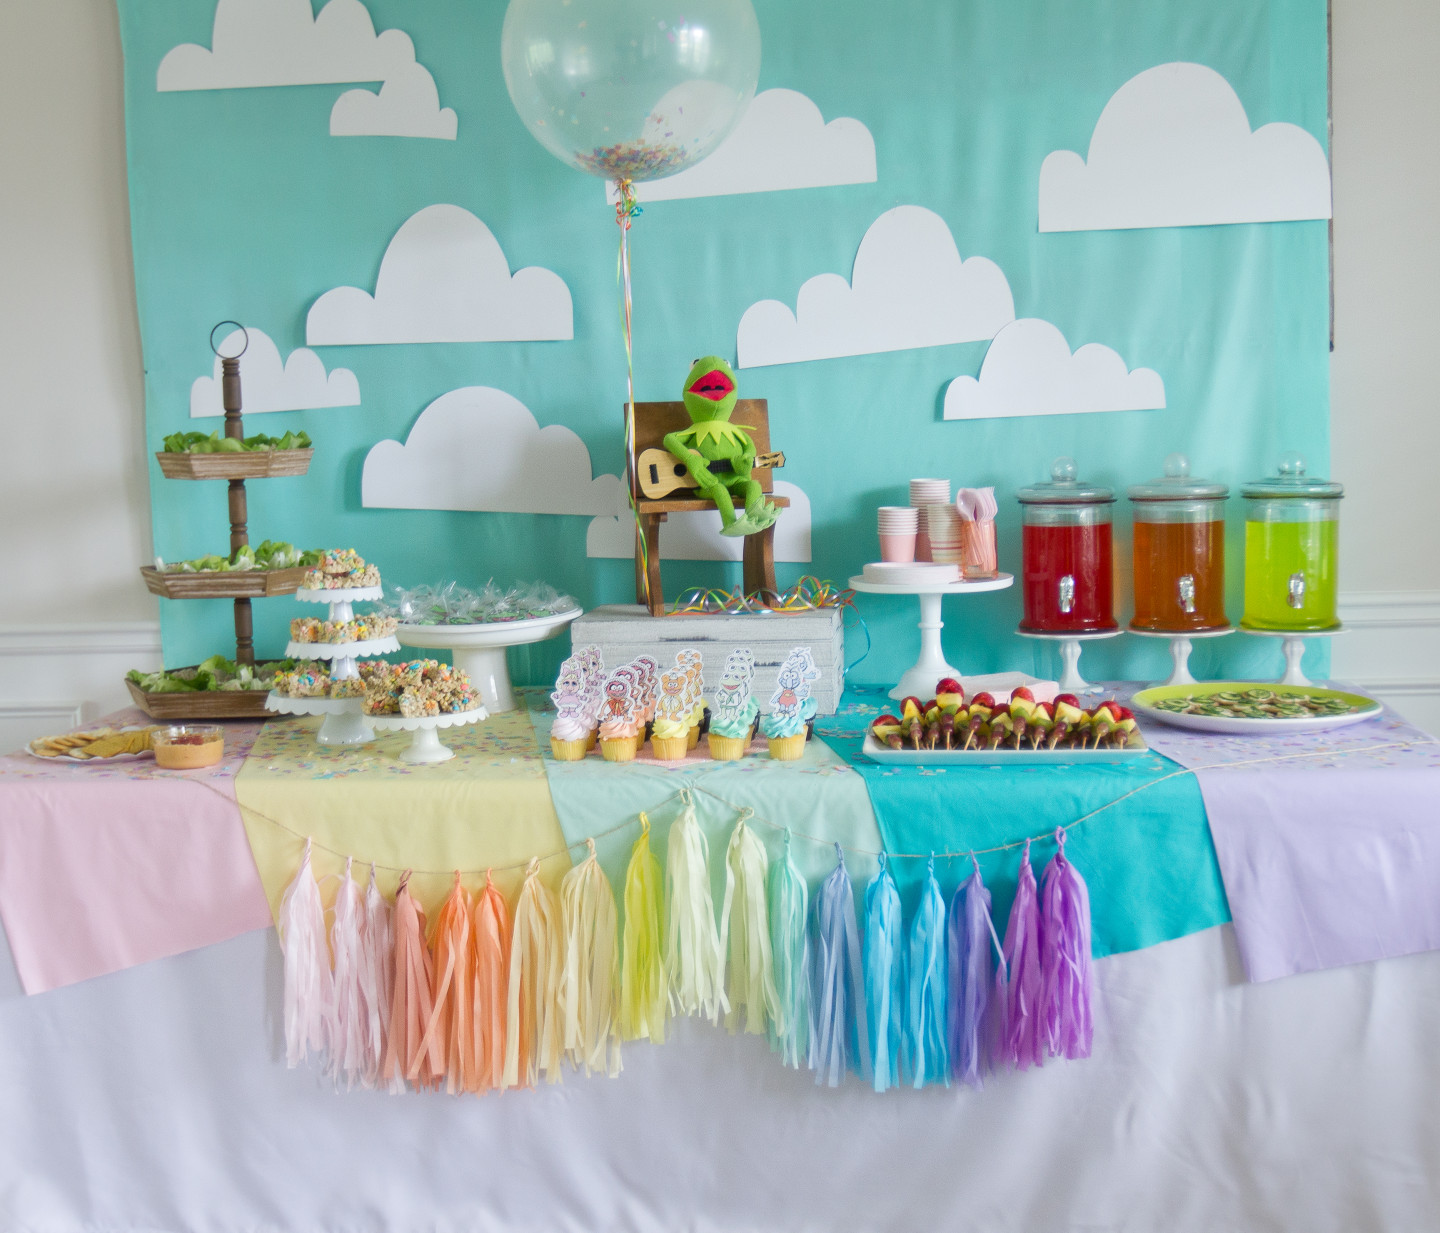 A Shower Fit for a (Muppet) Baby